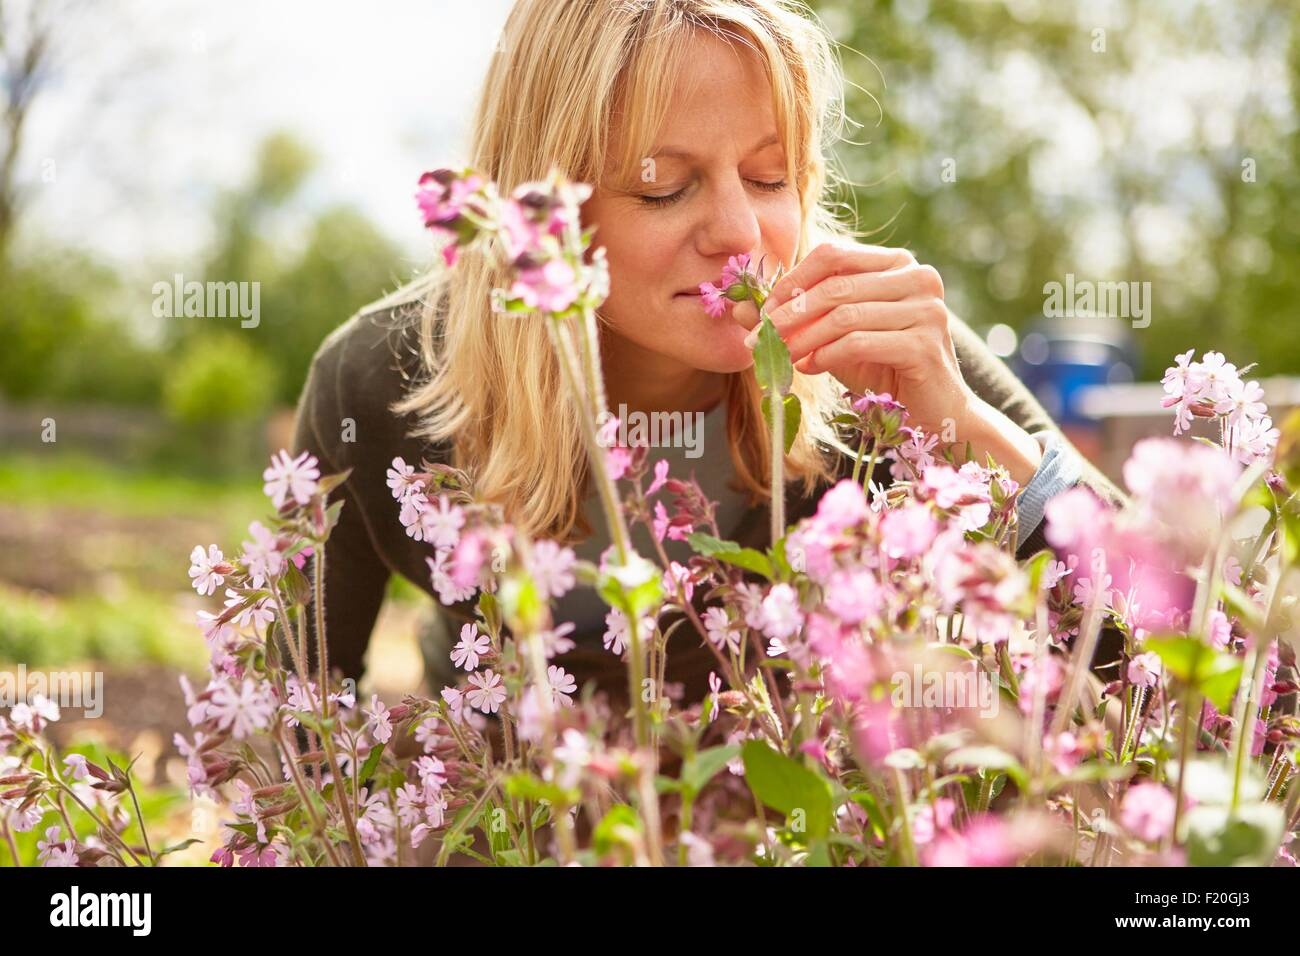 Mature woman, outdoors, smelling flowers - Stock Image